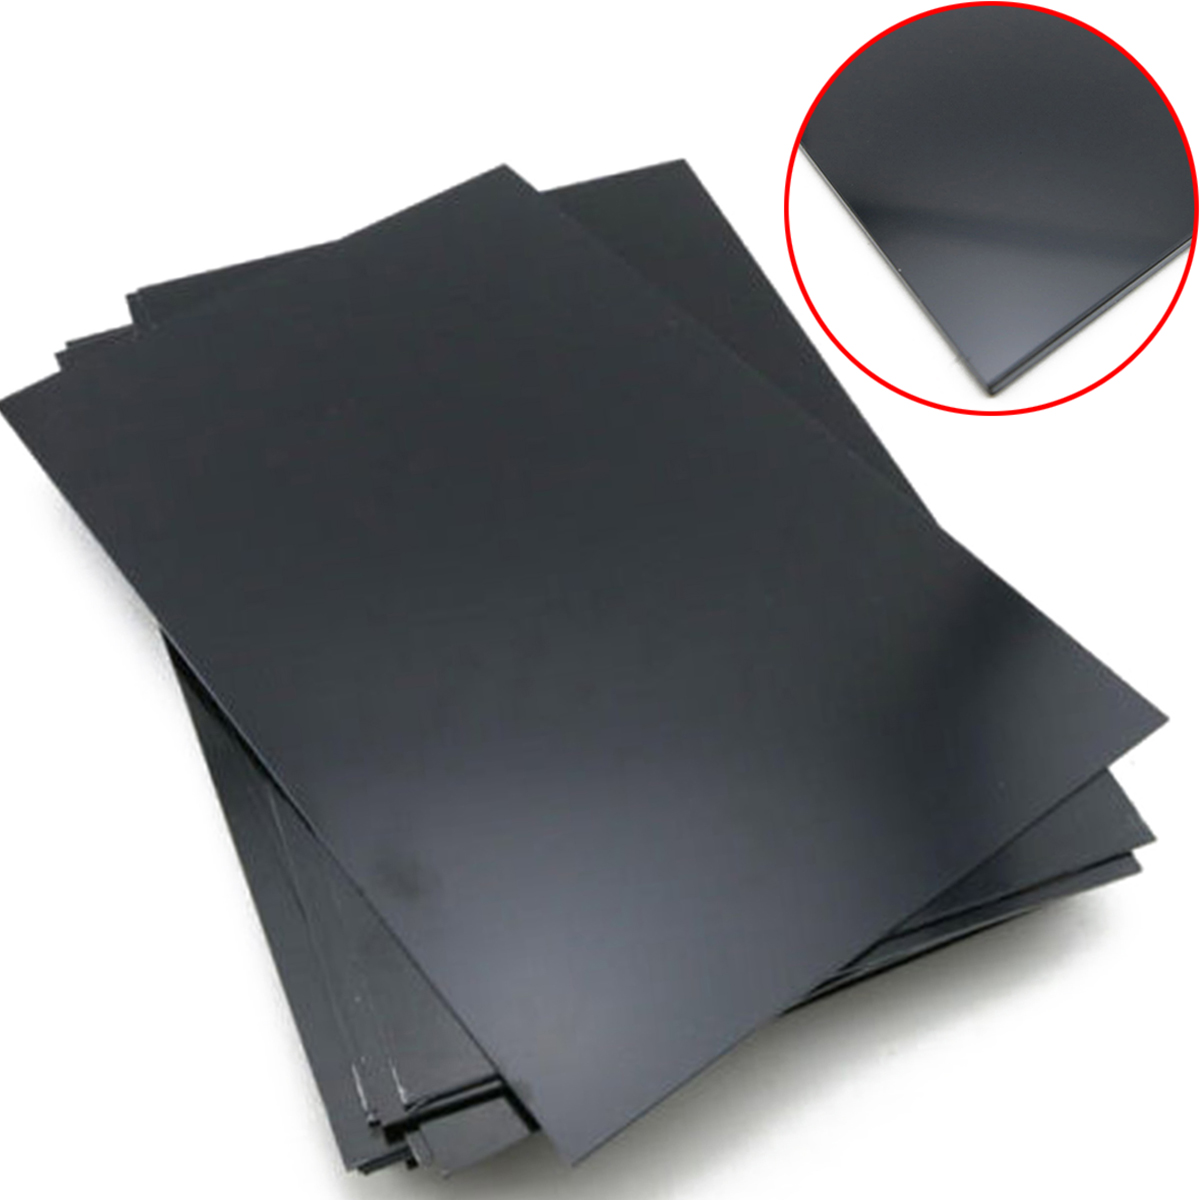 1 Piece Black Abs Styrene Plastic Plate Mayitr Durable